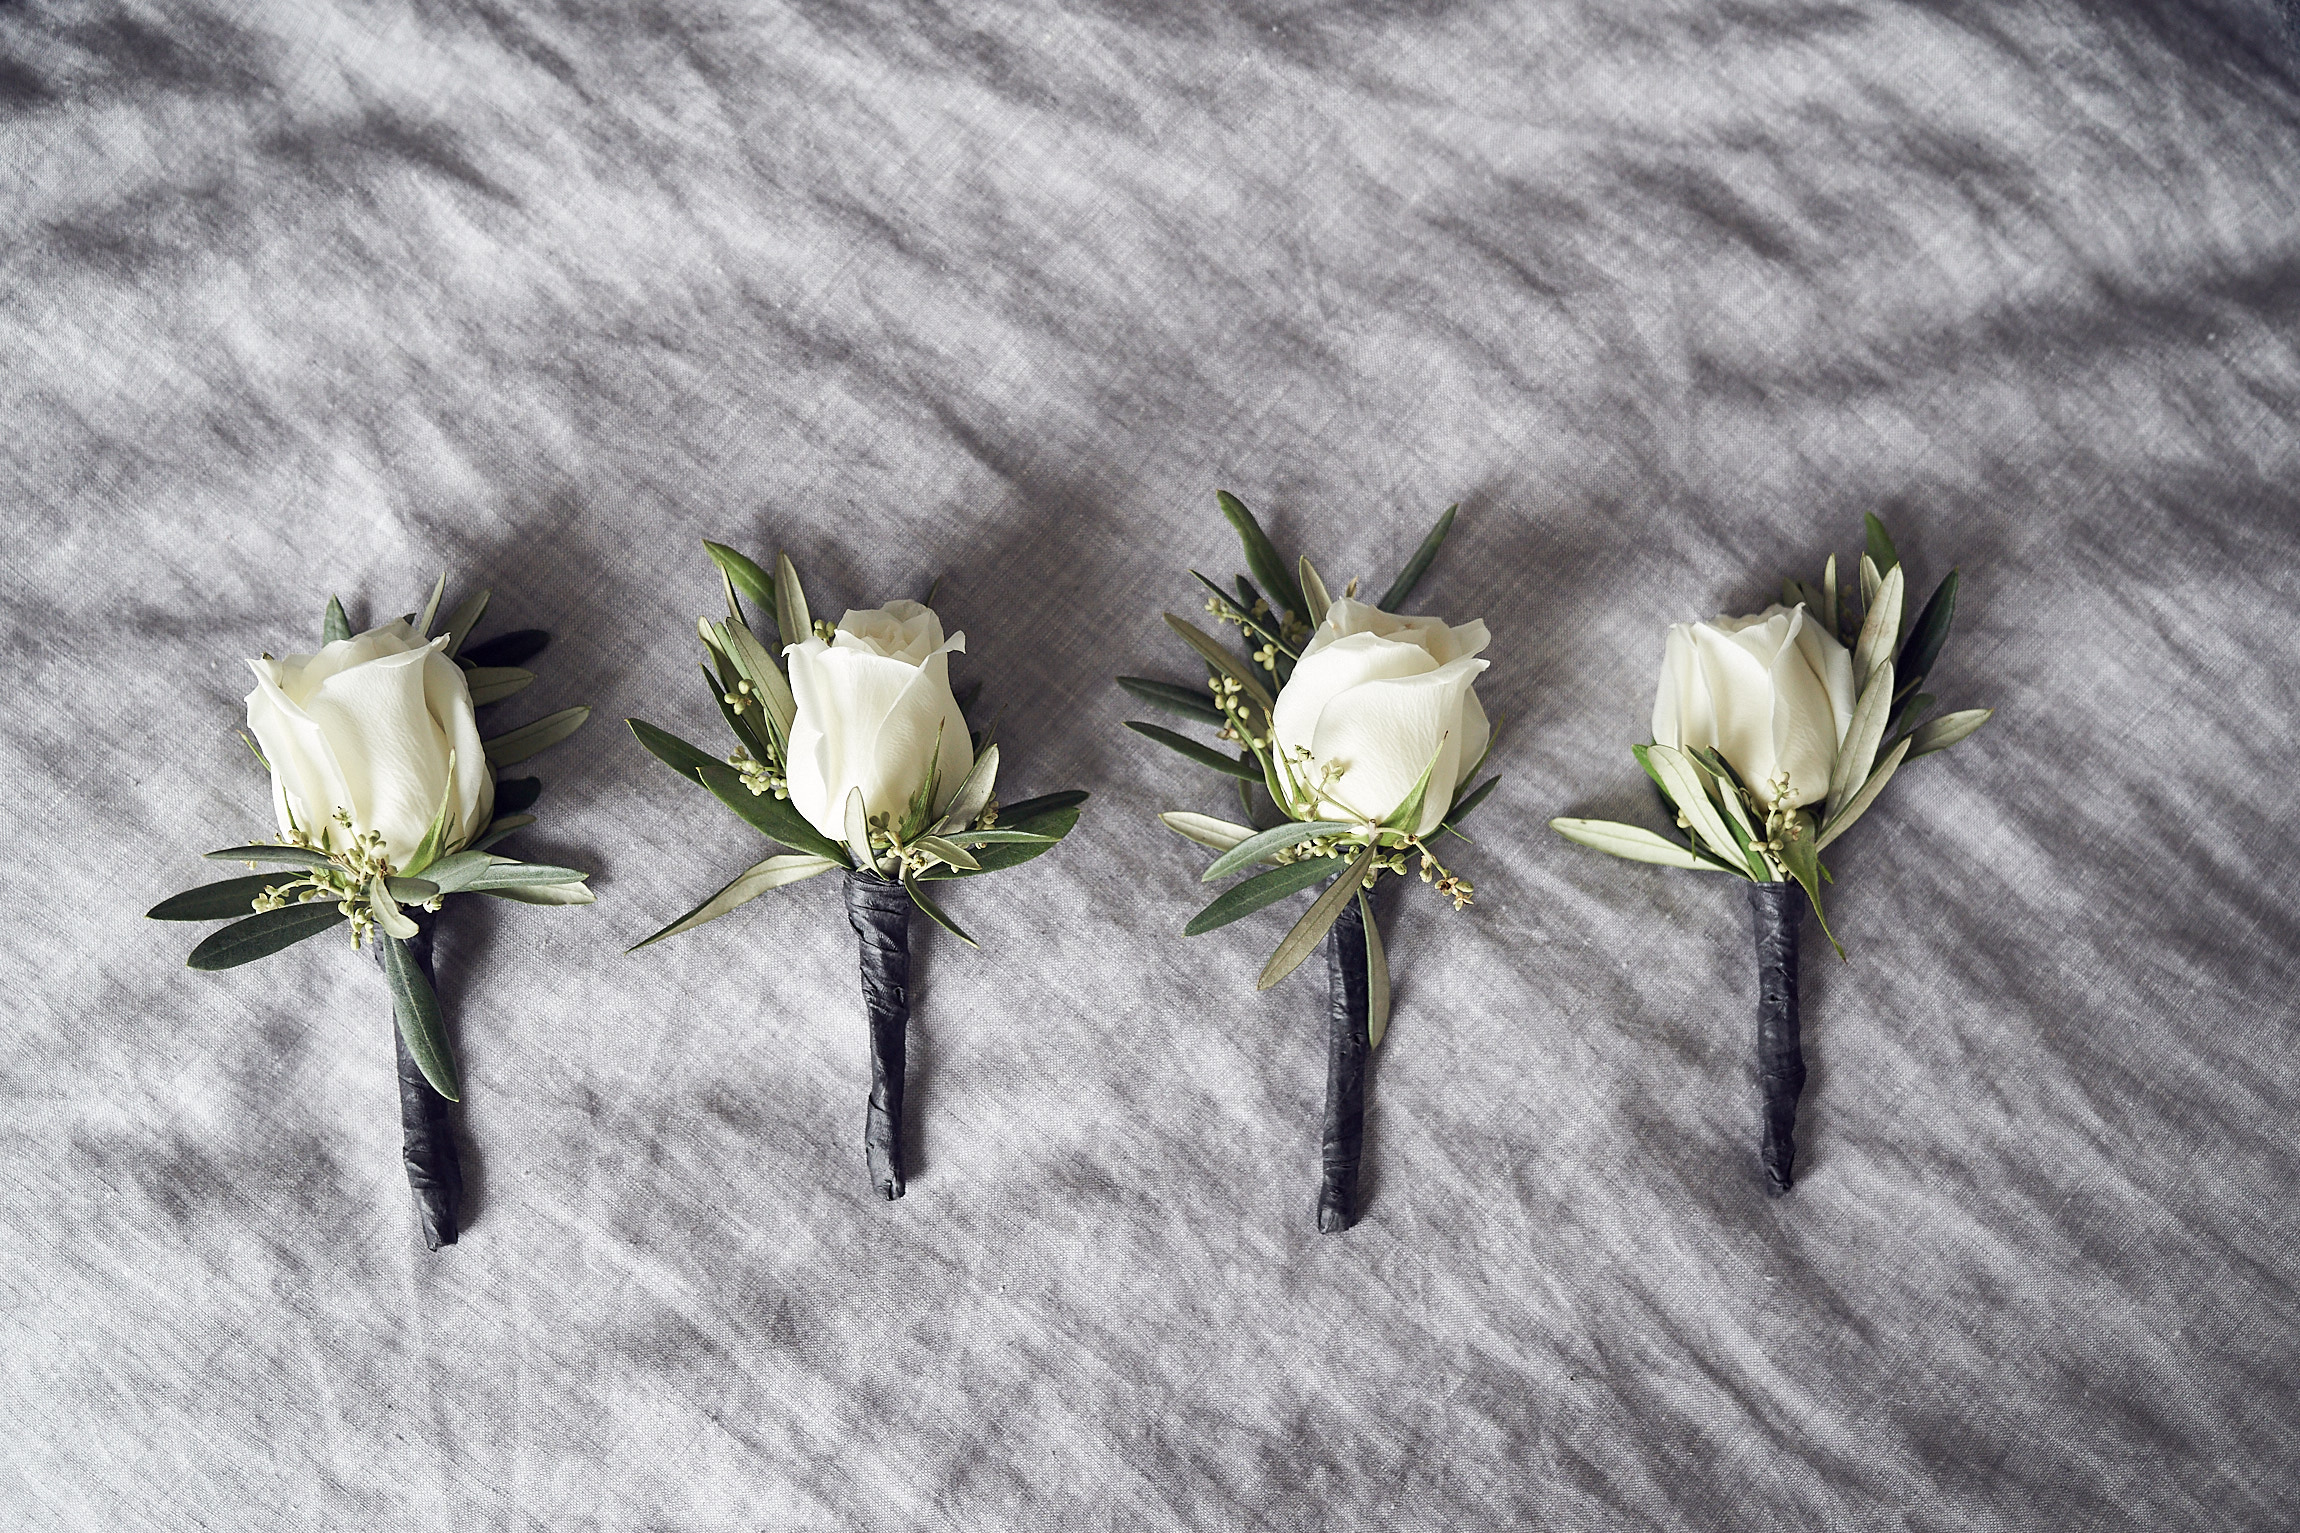 Boutonnieres of white rose bud and dwarf olive leaves